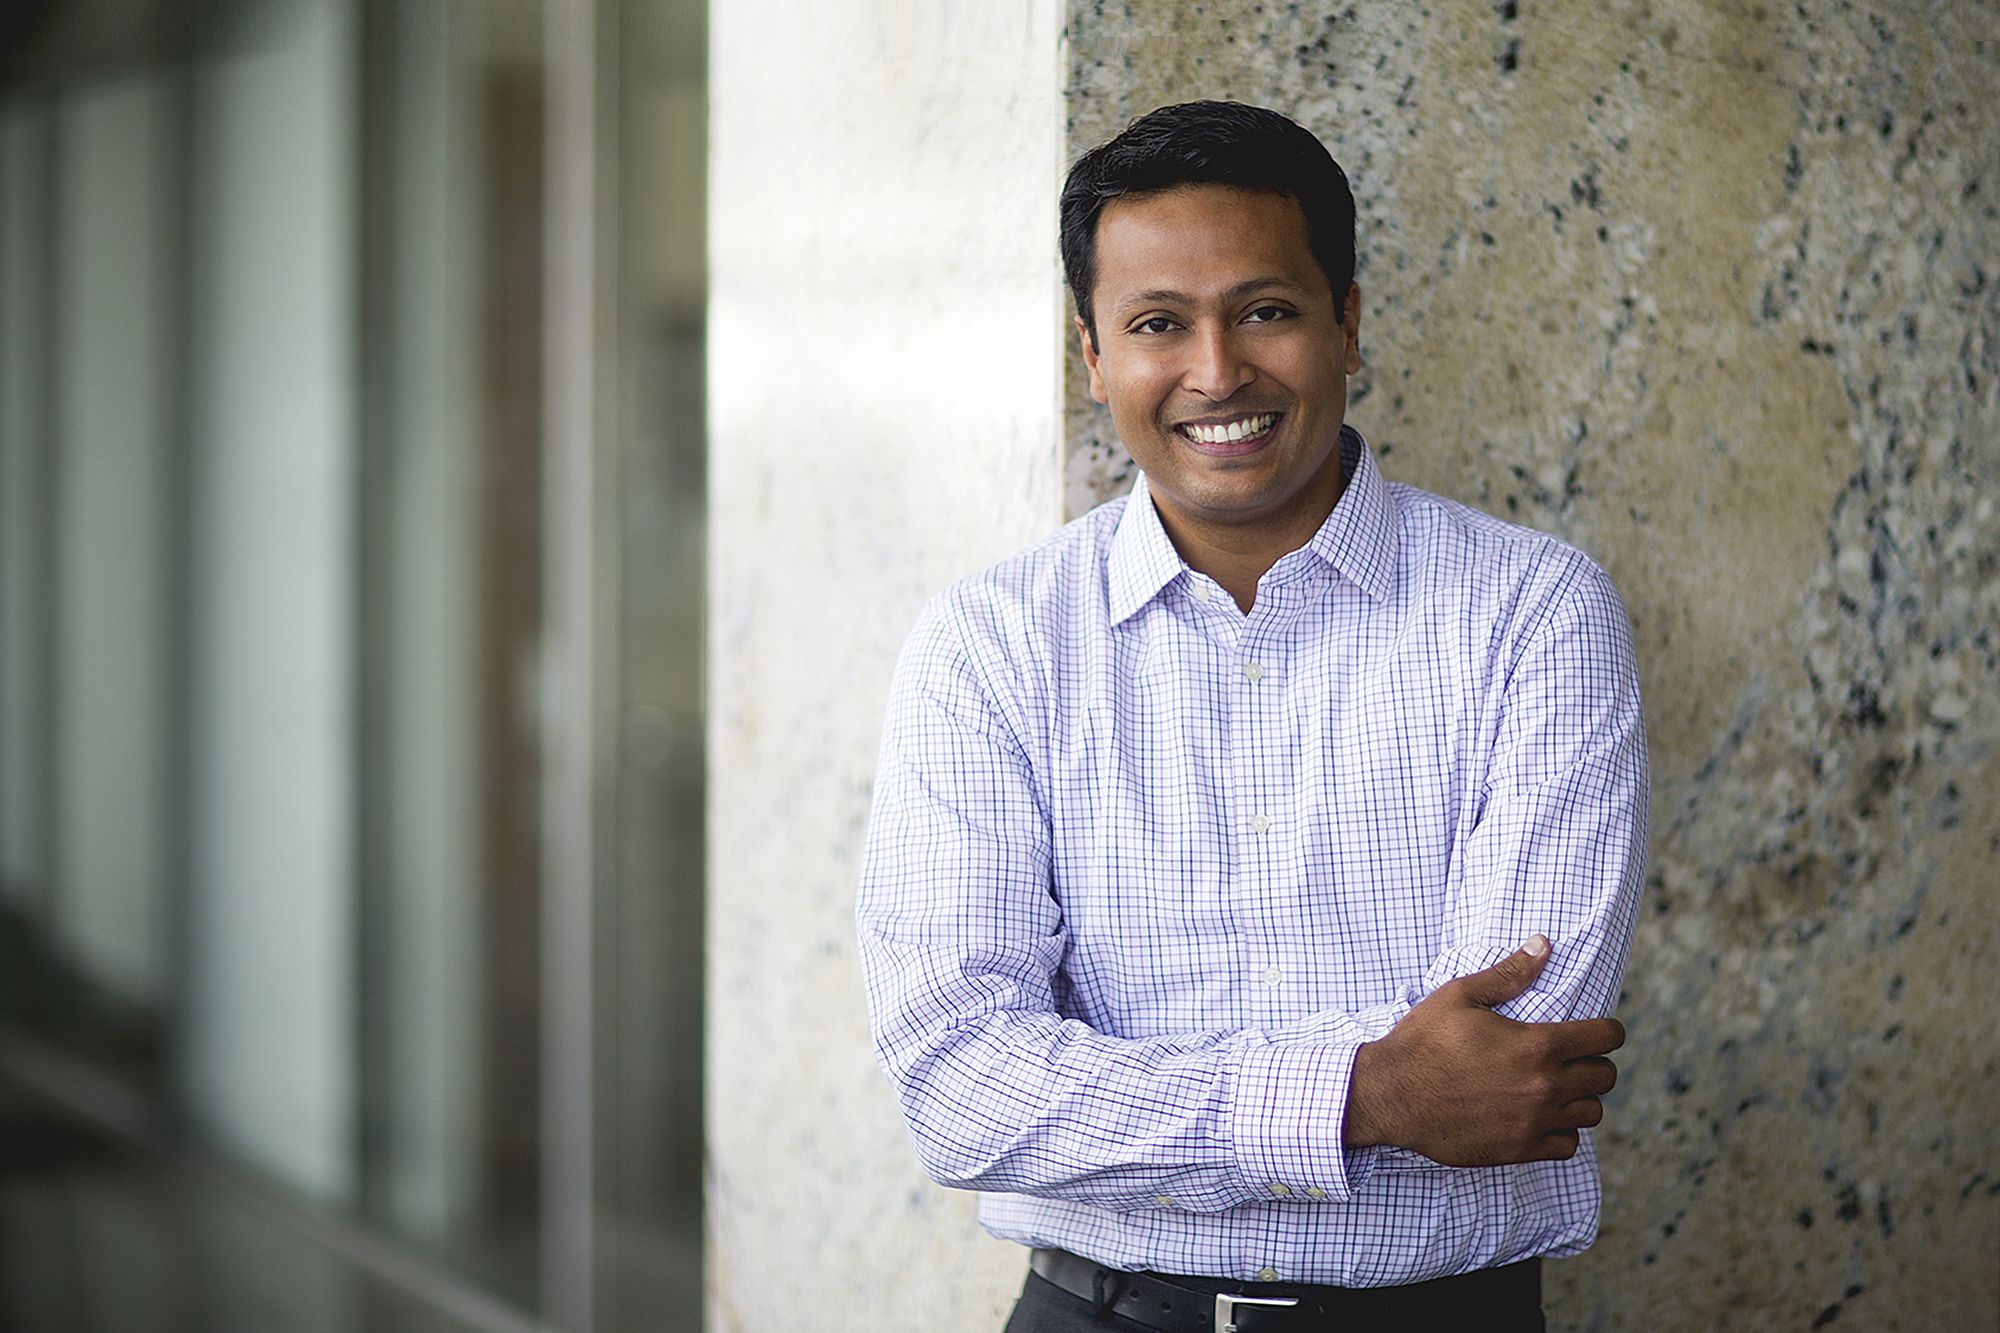 From Dumpster Diving to Building a $3 Billion Business: 7 Things Sharran Srivatsaa Learned on His Journey to Success